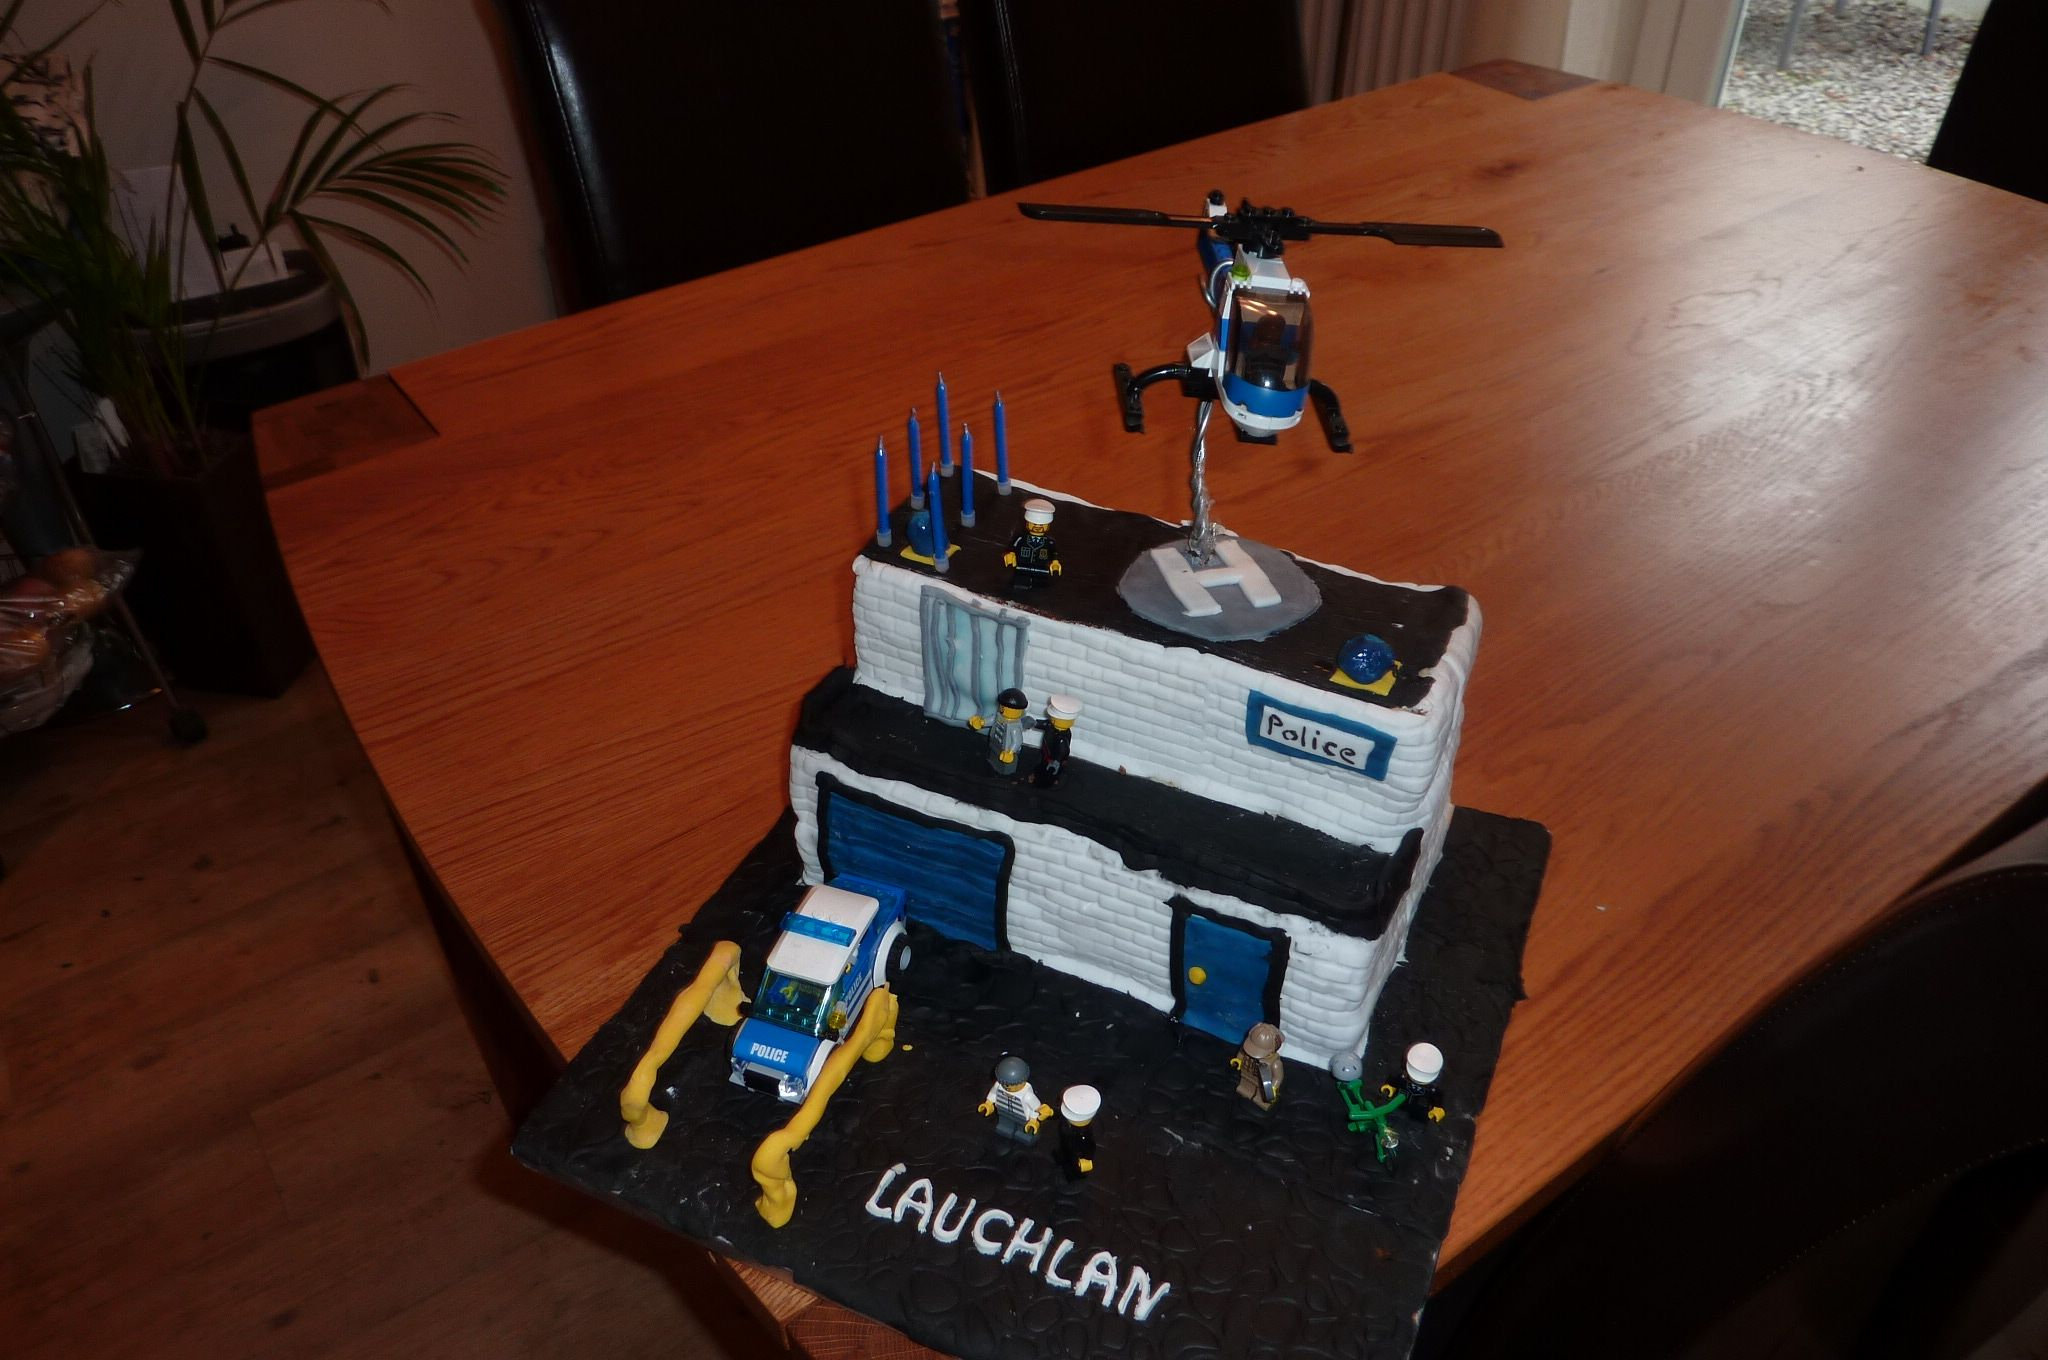 Made My Son A Lego Police Cake For His 6th Birthday